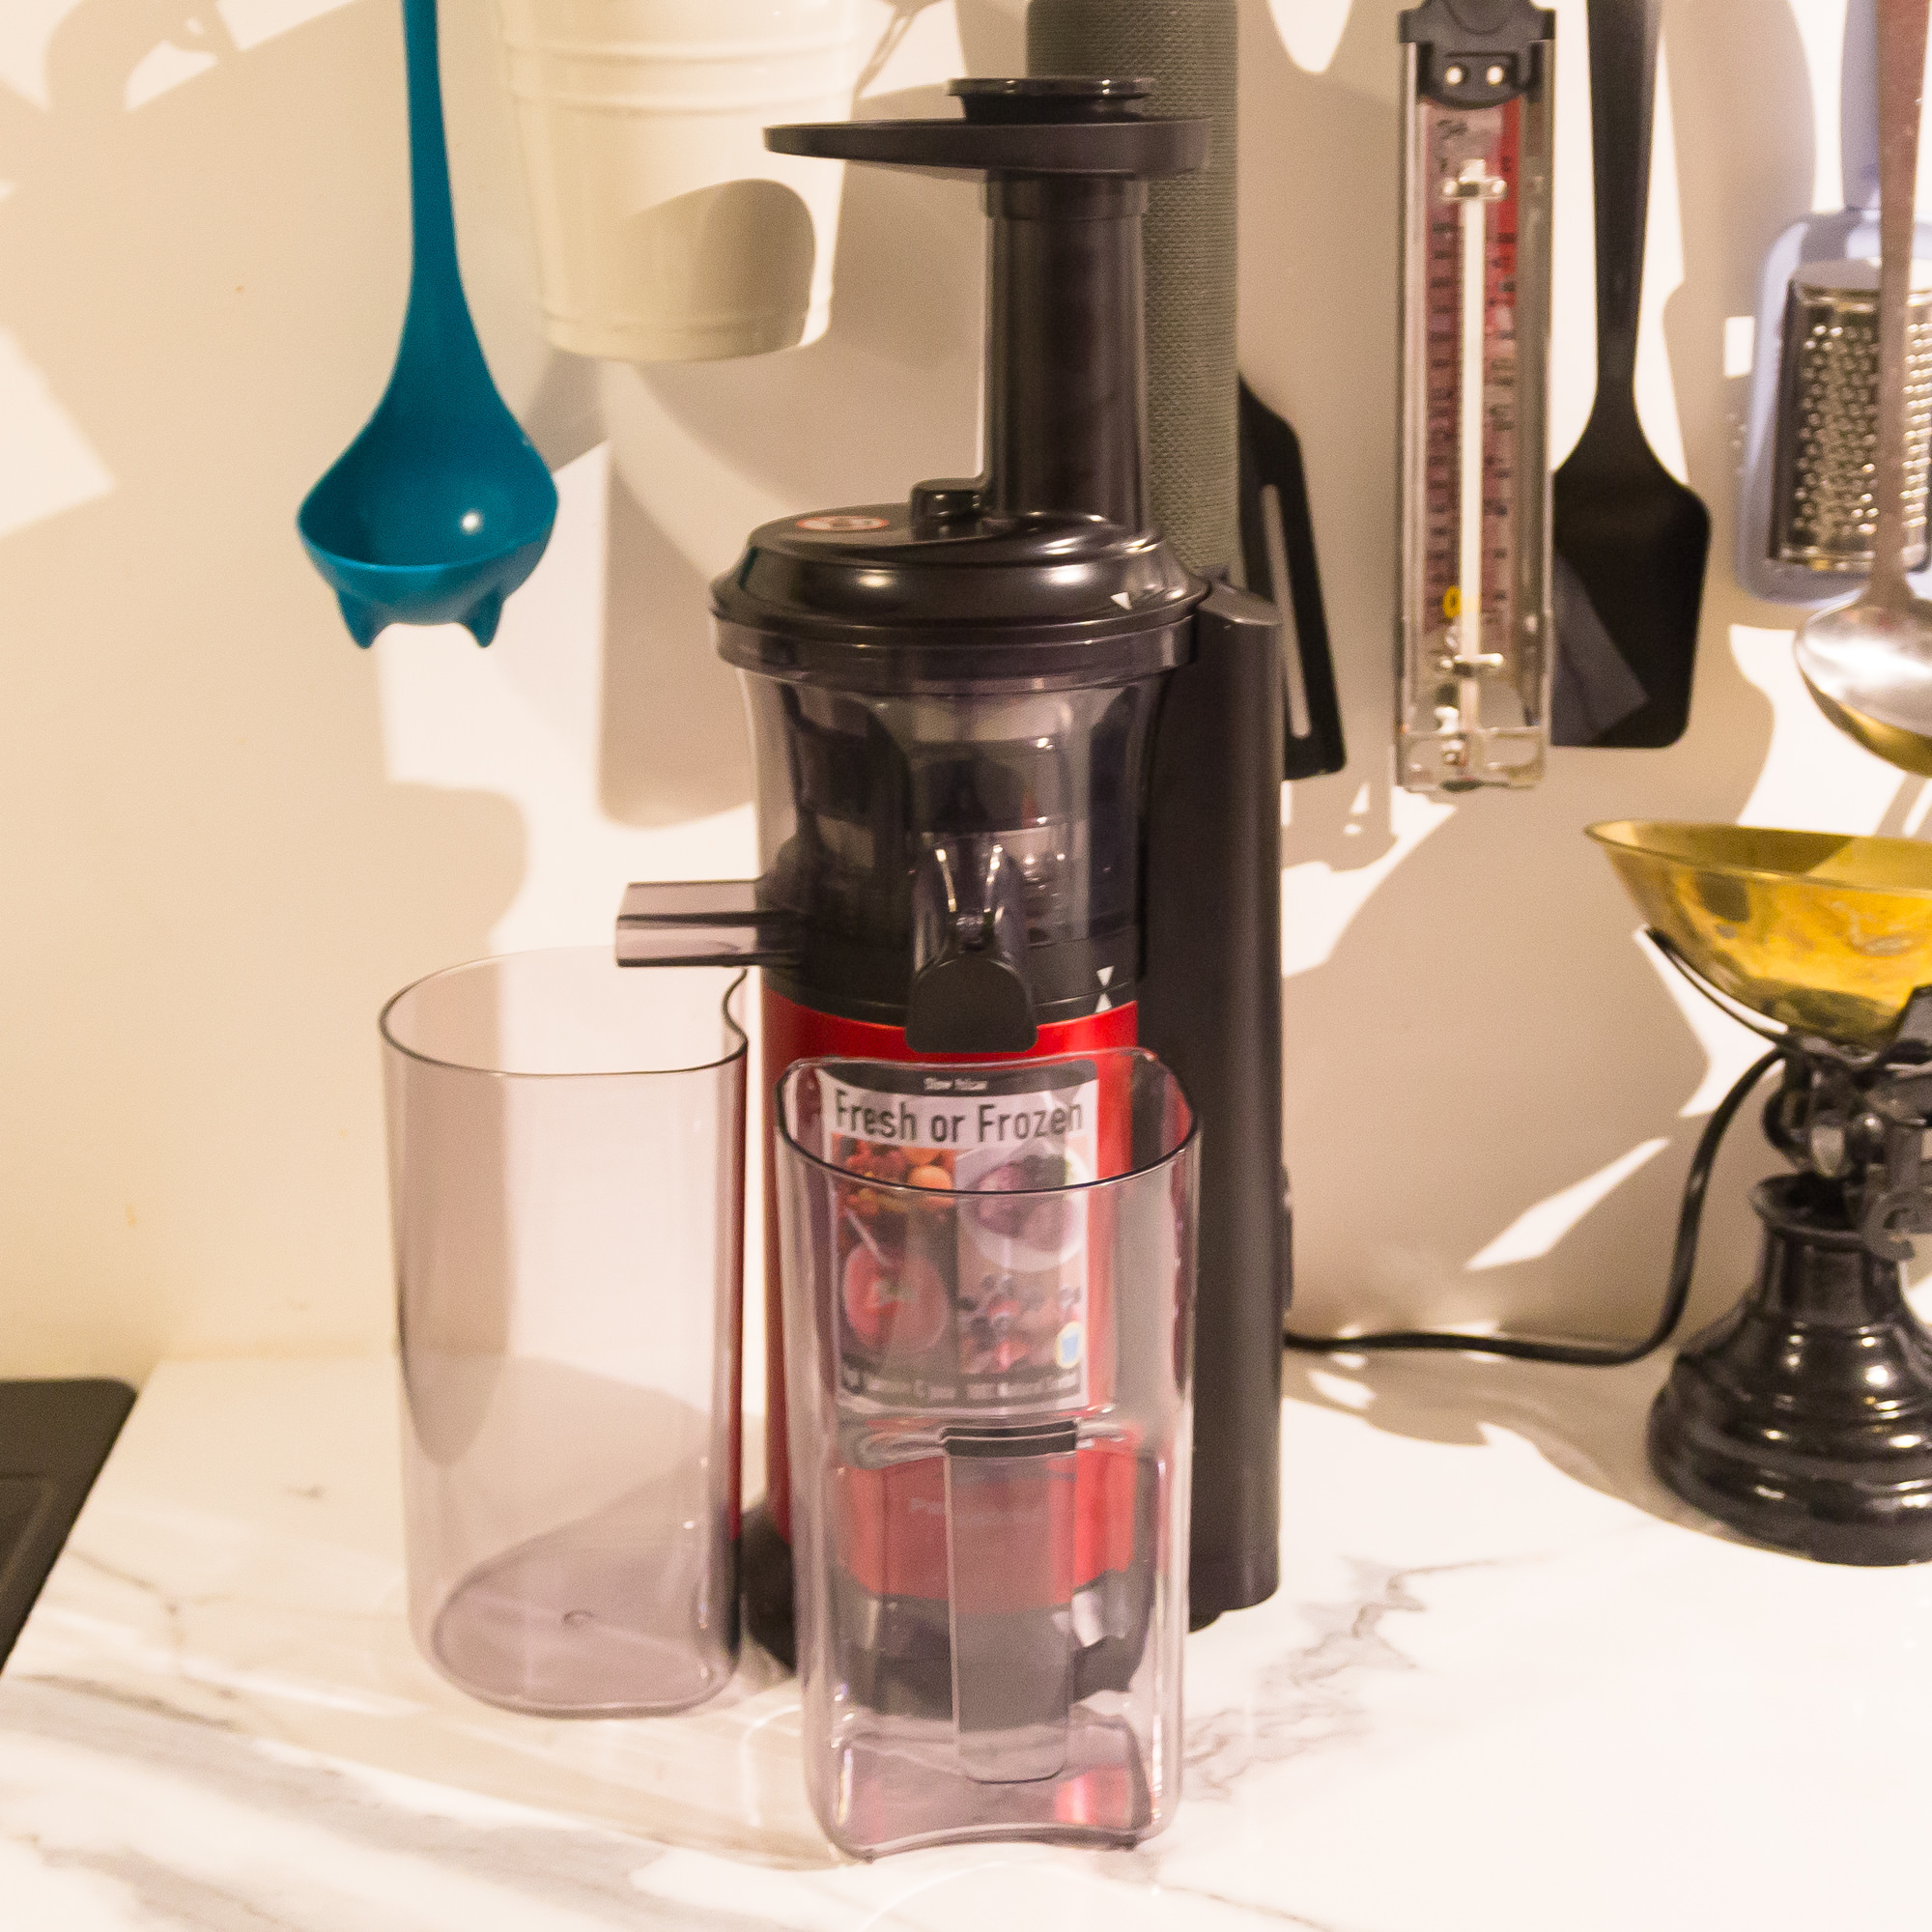 Slow Juicer Panasonic Review : Panasonic Slow Juicer - Strikeapose